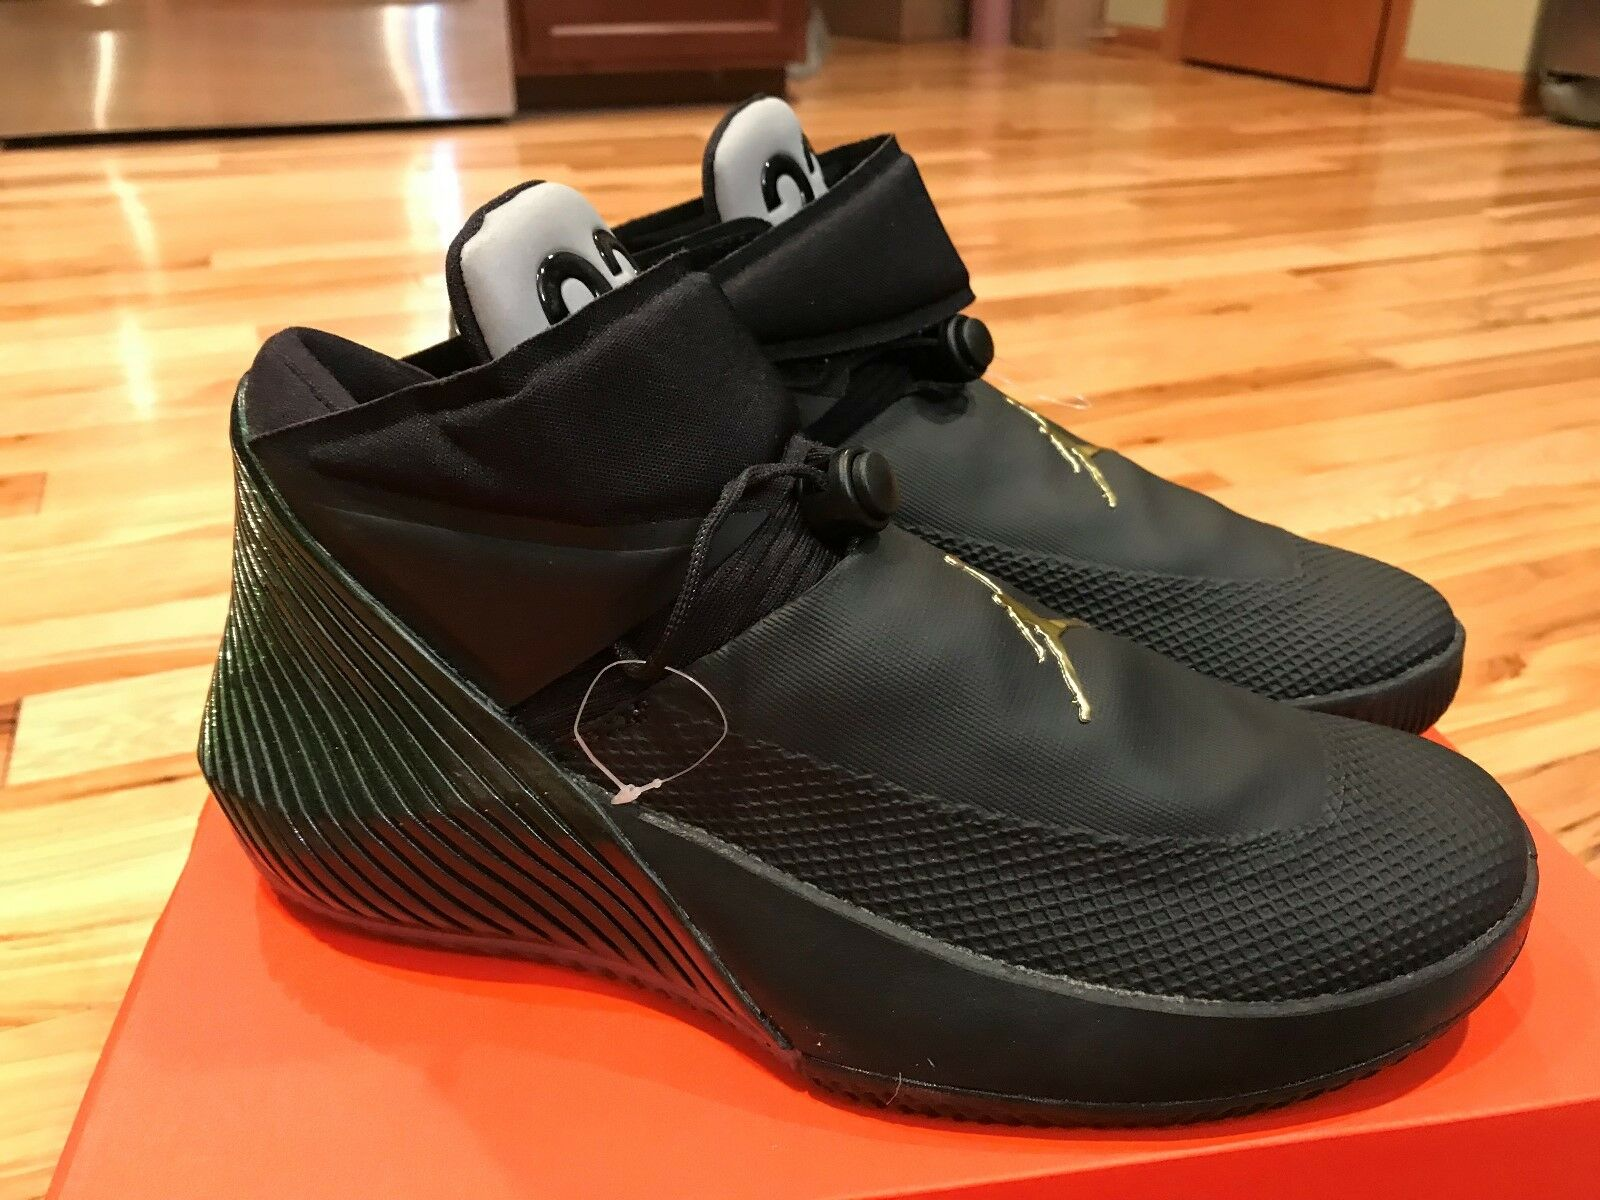 Nike Air Jordan Why Not Zer0.1 Black Iridescent Green aa2510 011 Comfortable Special limited time